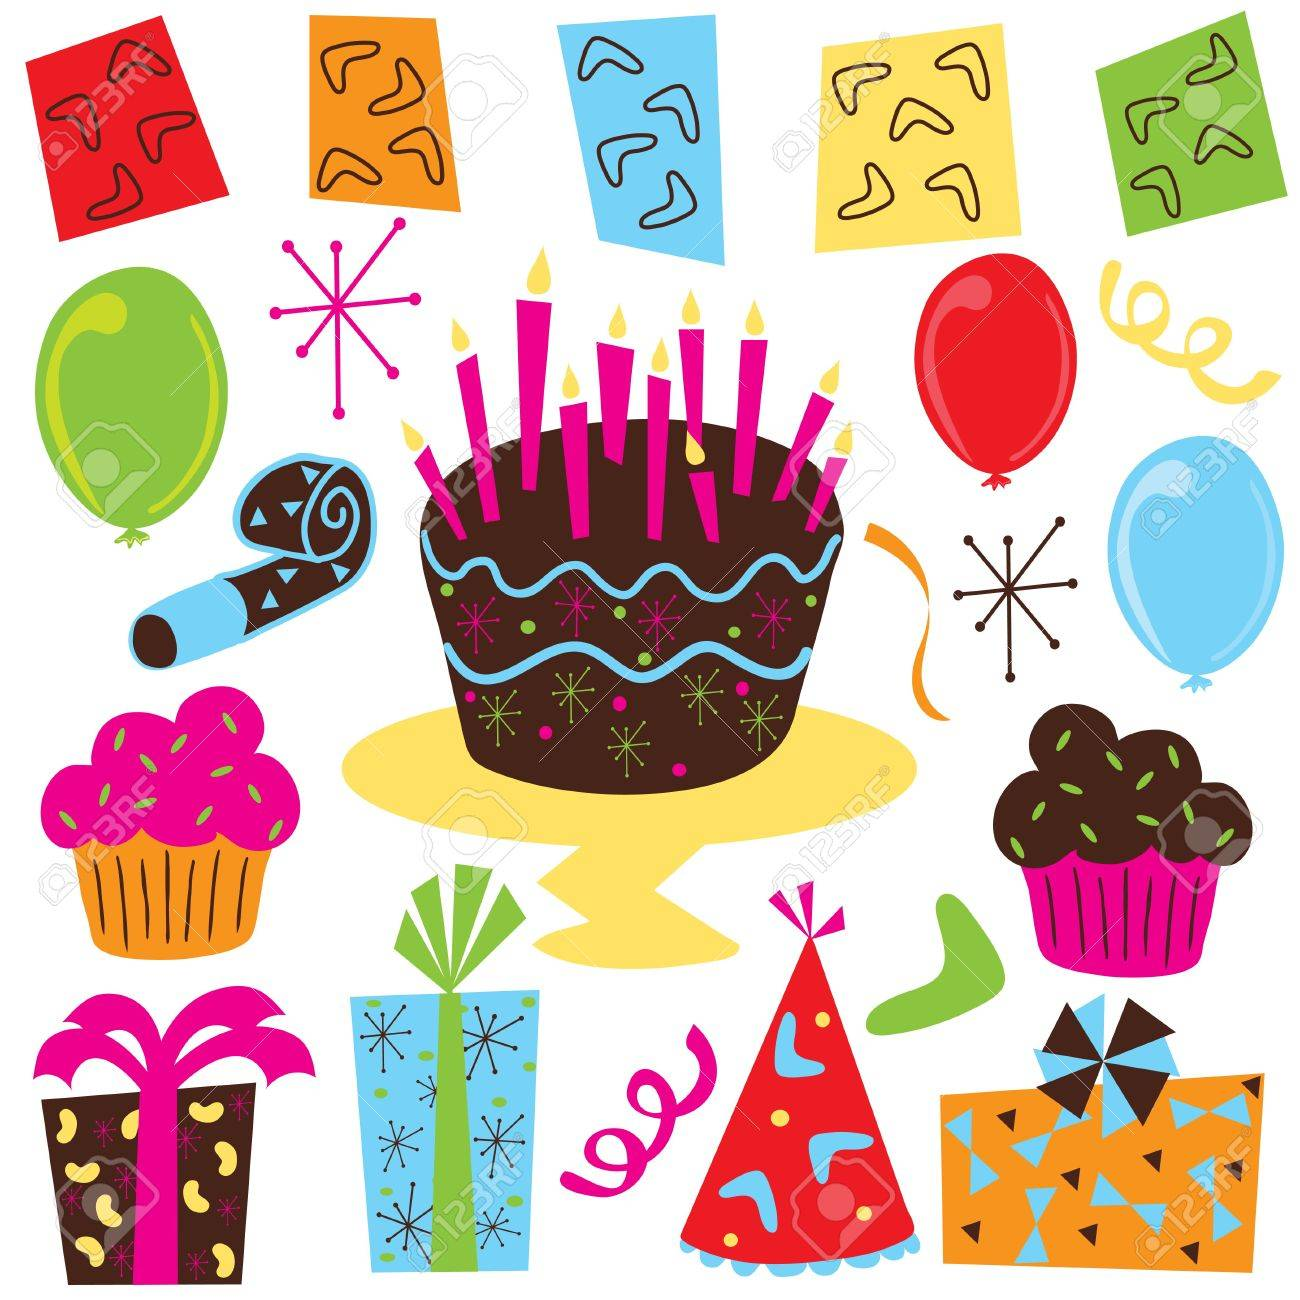 Retro Birthday Party clipart with birthday cake, cupcakes, balloons, streamers, party favors, presents and 1950's symbols Stock Photo - 4945296